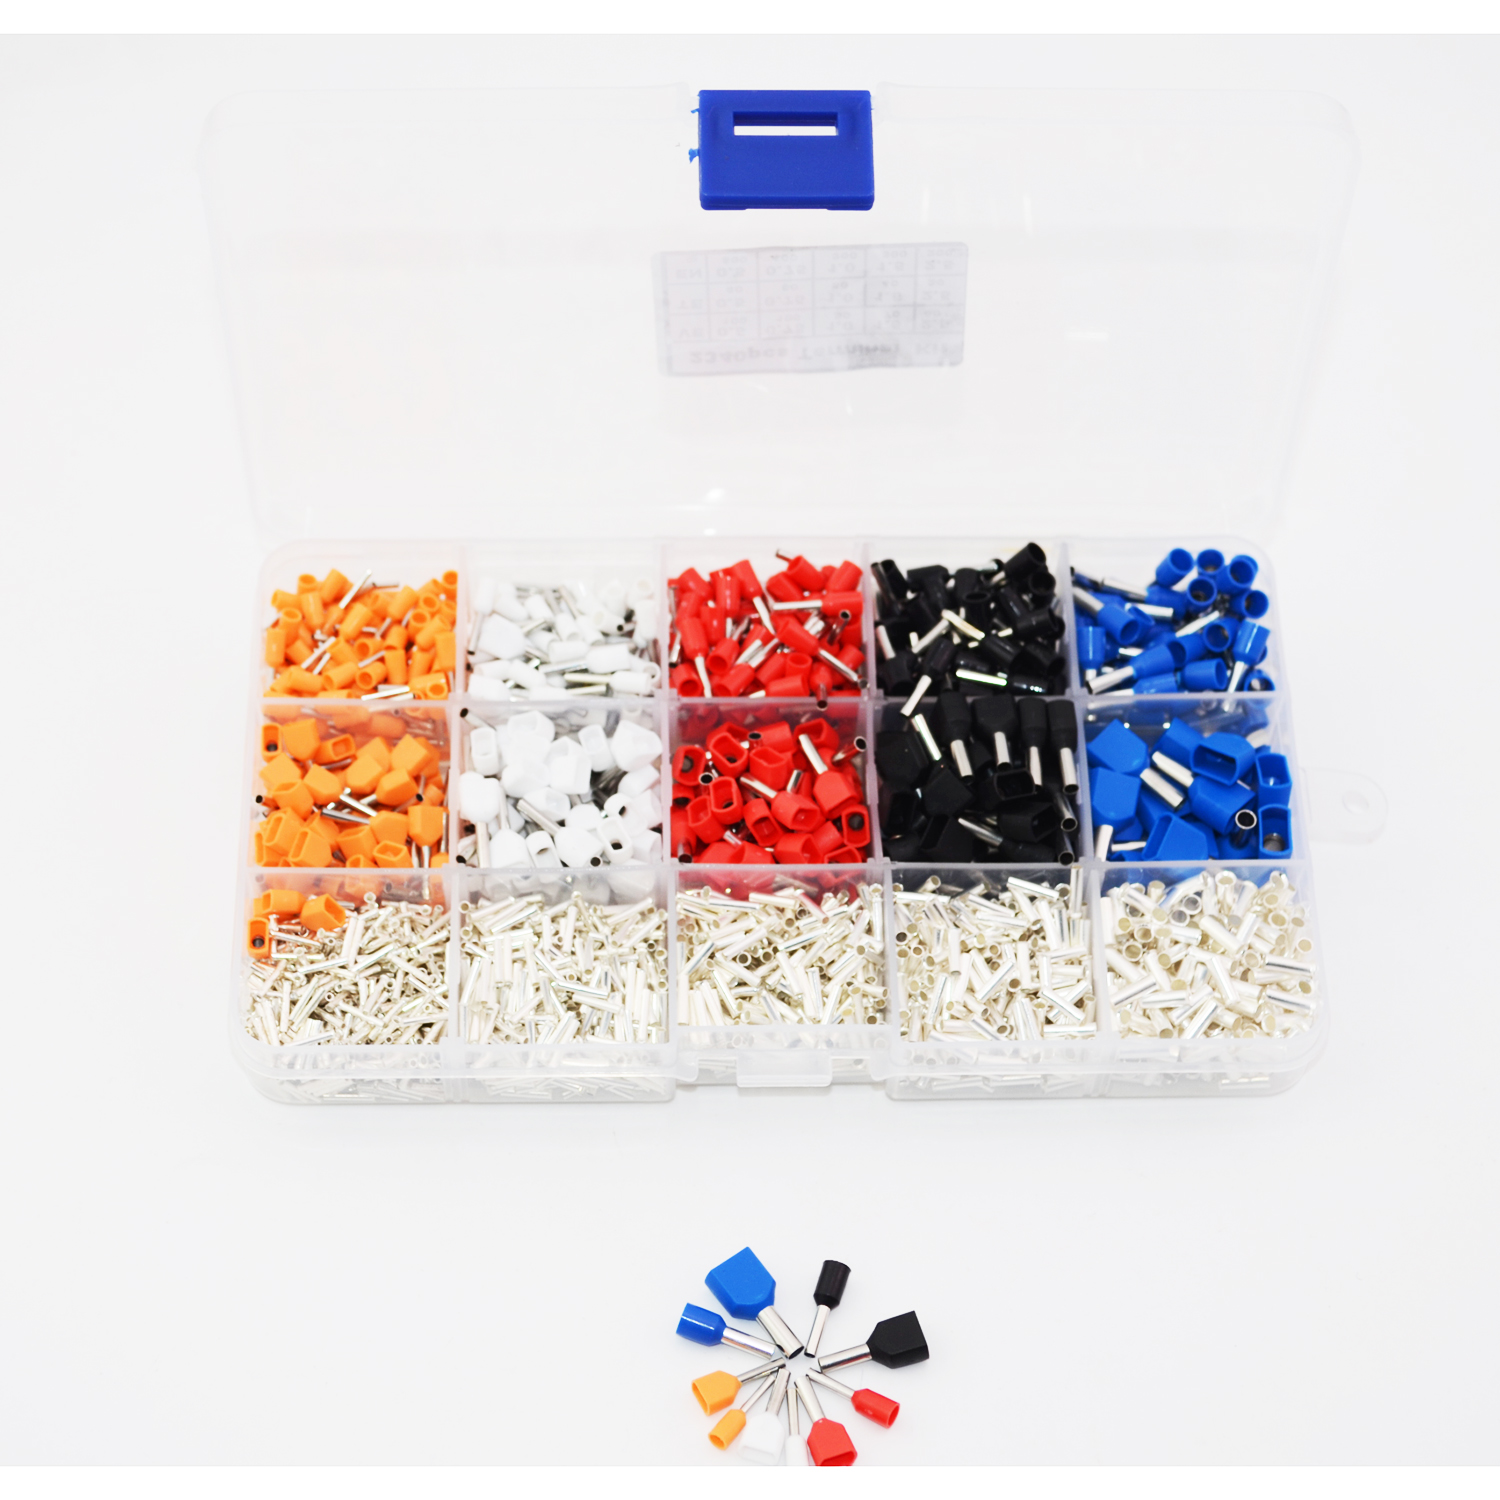 5 color 15 value 2340pcs/lot Bootlace Ferrules kit set Wire Crimp Connector Insulated Cord Pin End Terminal 2340pcs lot mixed 15 models dual bootlace ferrule kit electrical crimp crimper cord wire end terminal block